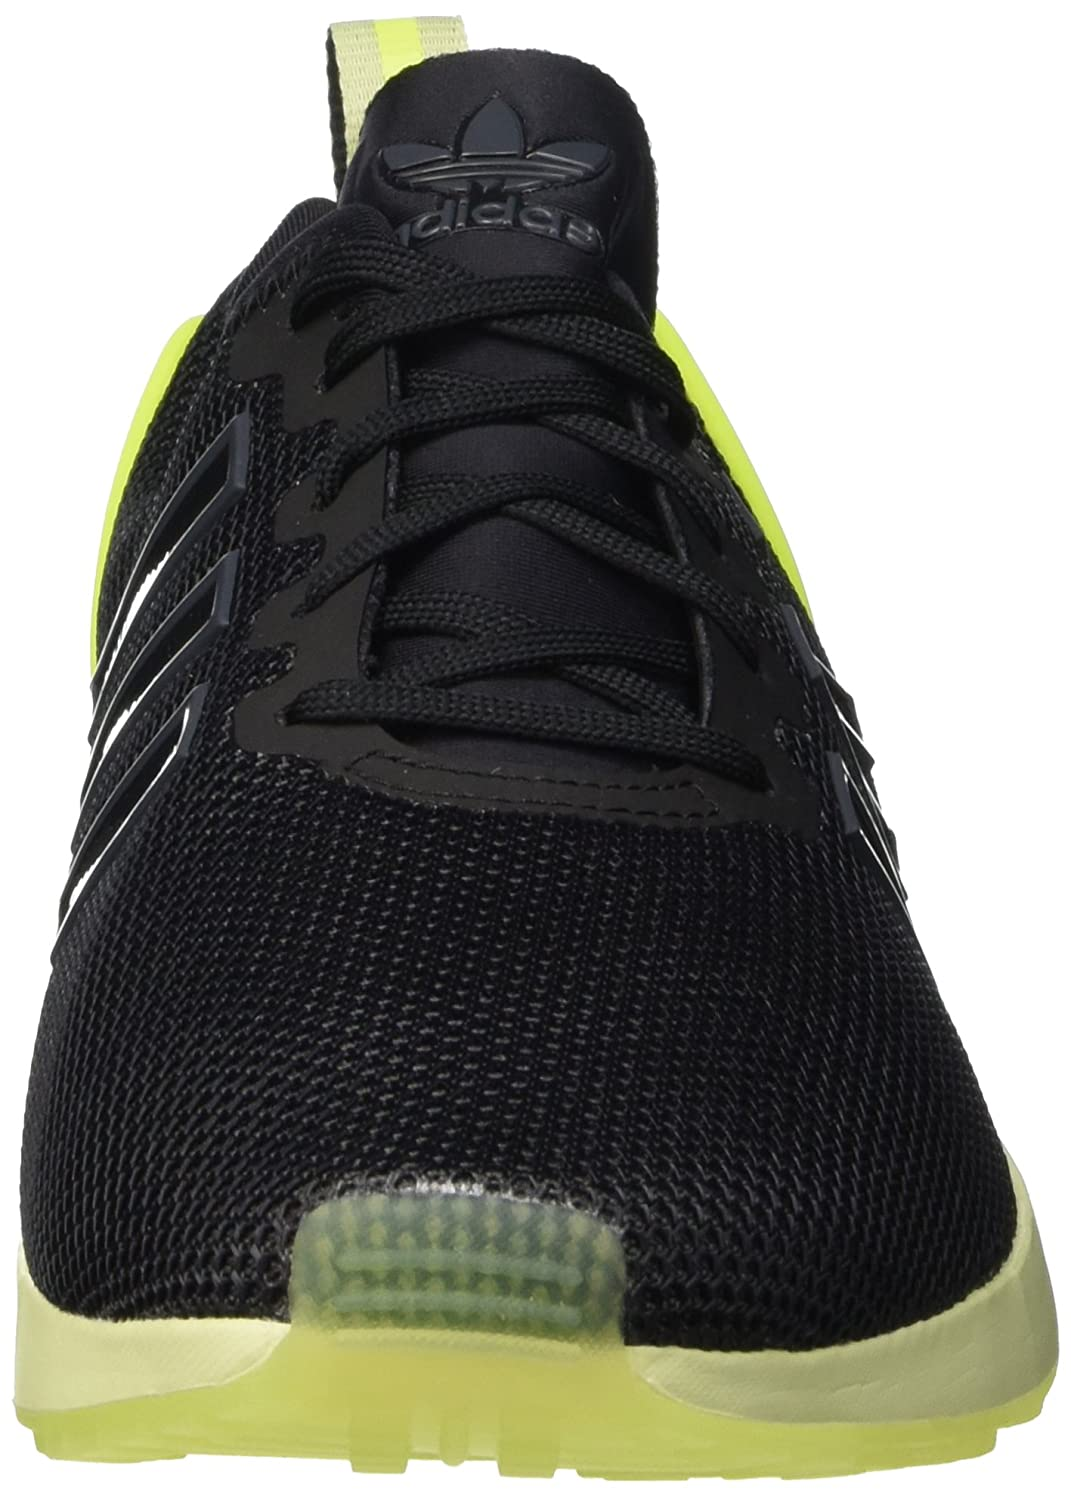 brand new 2c28e 7dfd1 adidas Men s Zx Flux Adv Training Running Shoes  Amazon.co.uk  Shoes   Bags